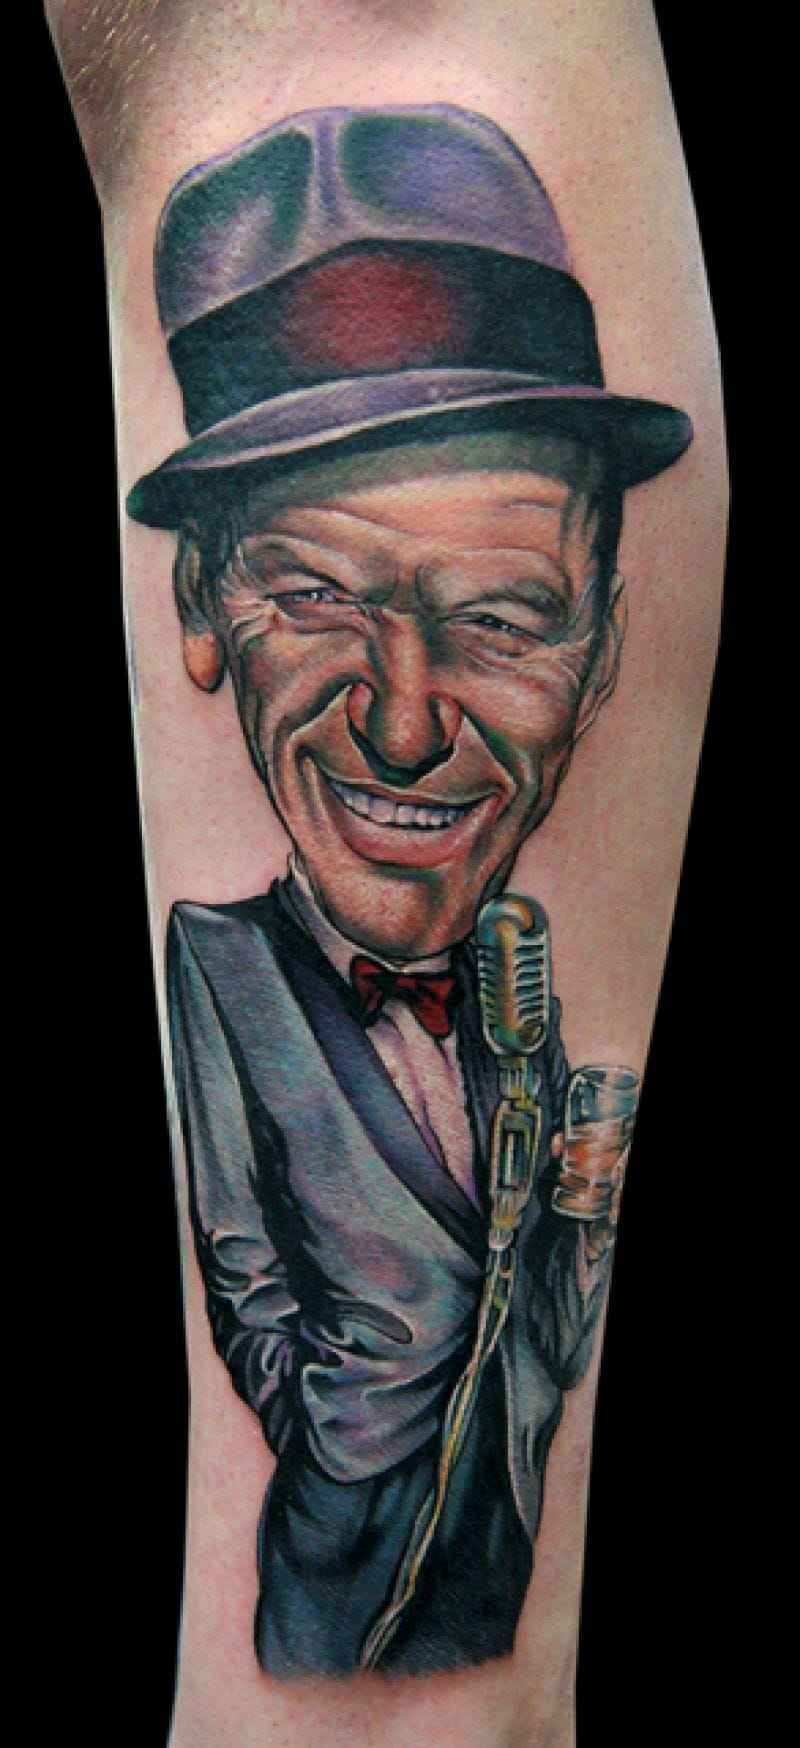 Cecil Porter enjoys caricature the Rat Pack, here Frank Sinatra.